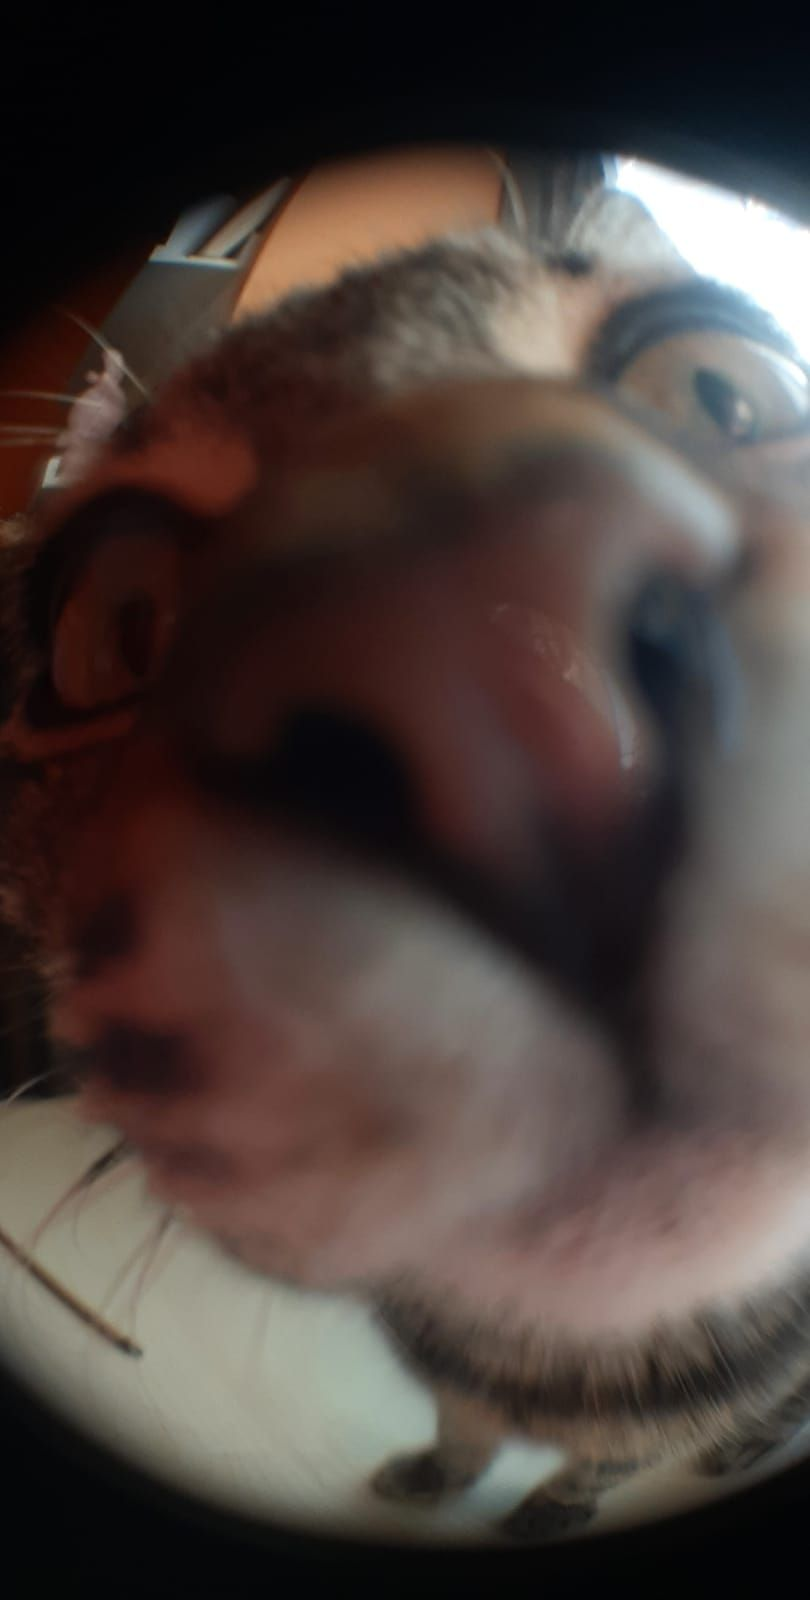 I was trying to take a picture with the fish eye lens, then my cat showed in front of the camera, and I got this priceless photo now....